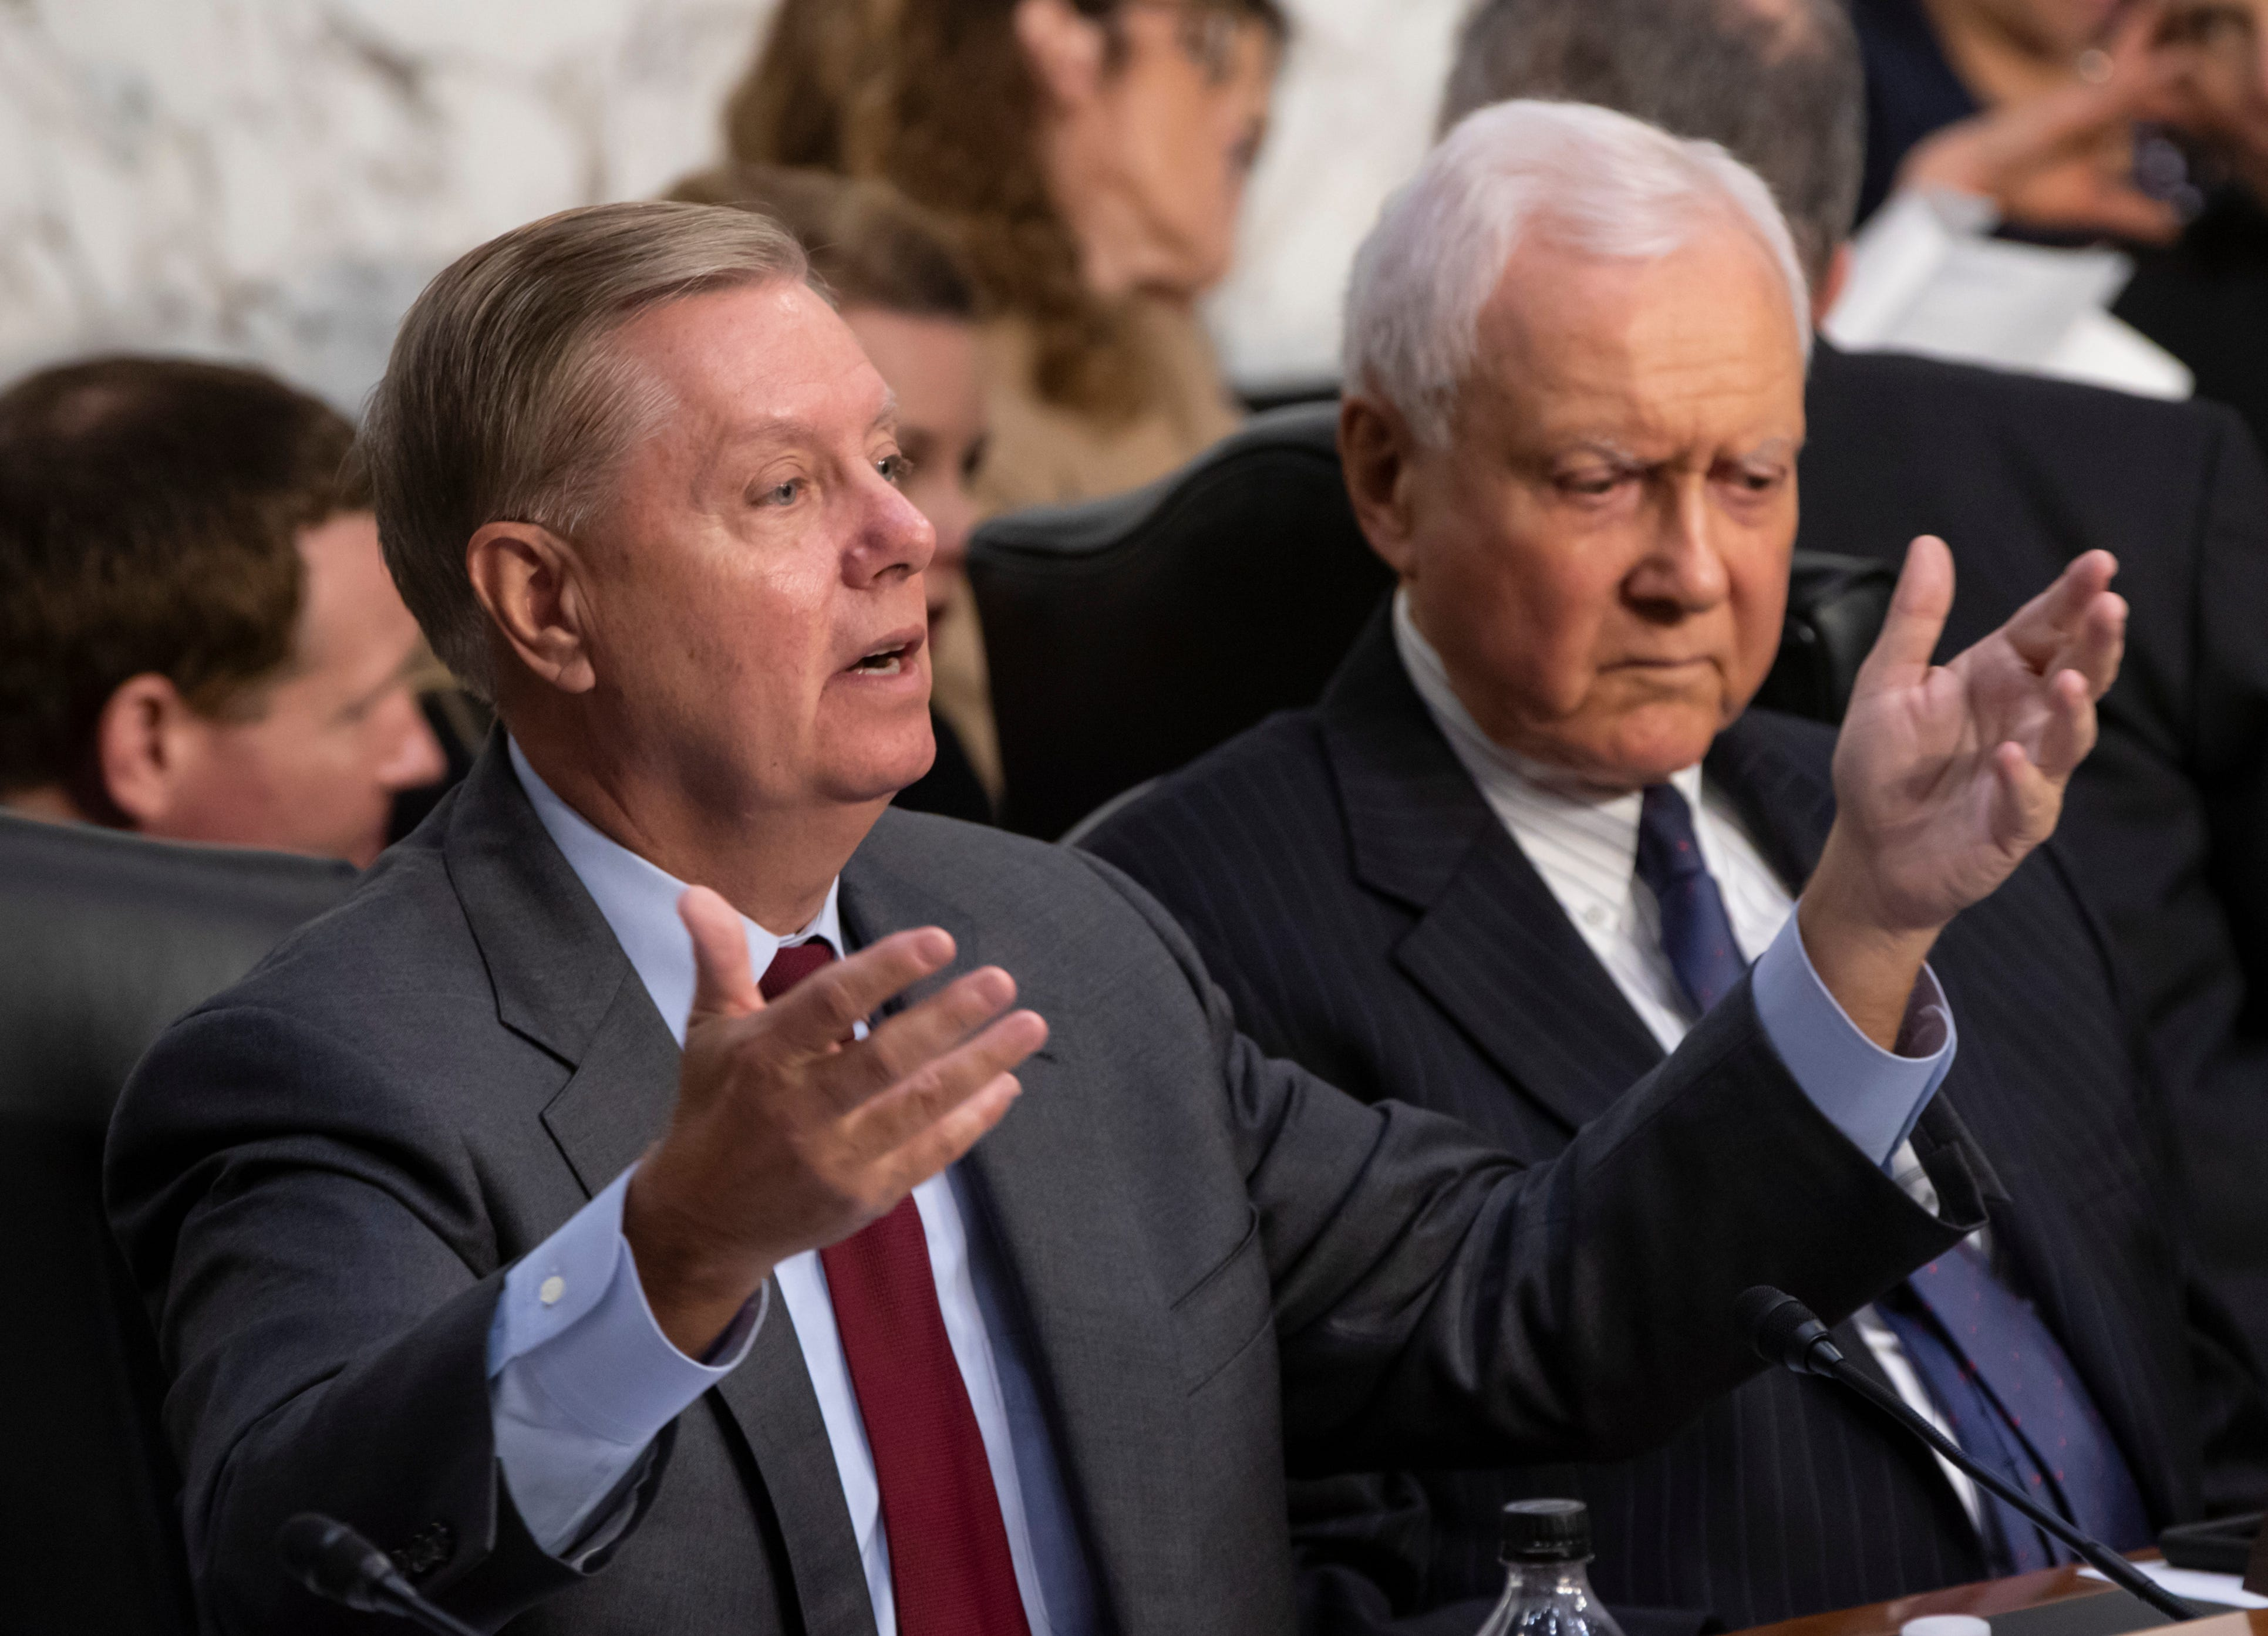 usatoday.com - William Cummings, USA TODAY - 'I'm not going to ruin Judge Kavanaugh's life over this': Sen. Graham doubts Ford's story